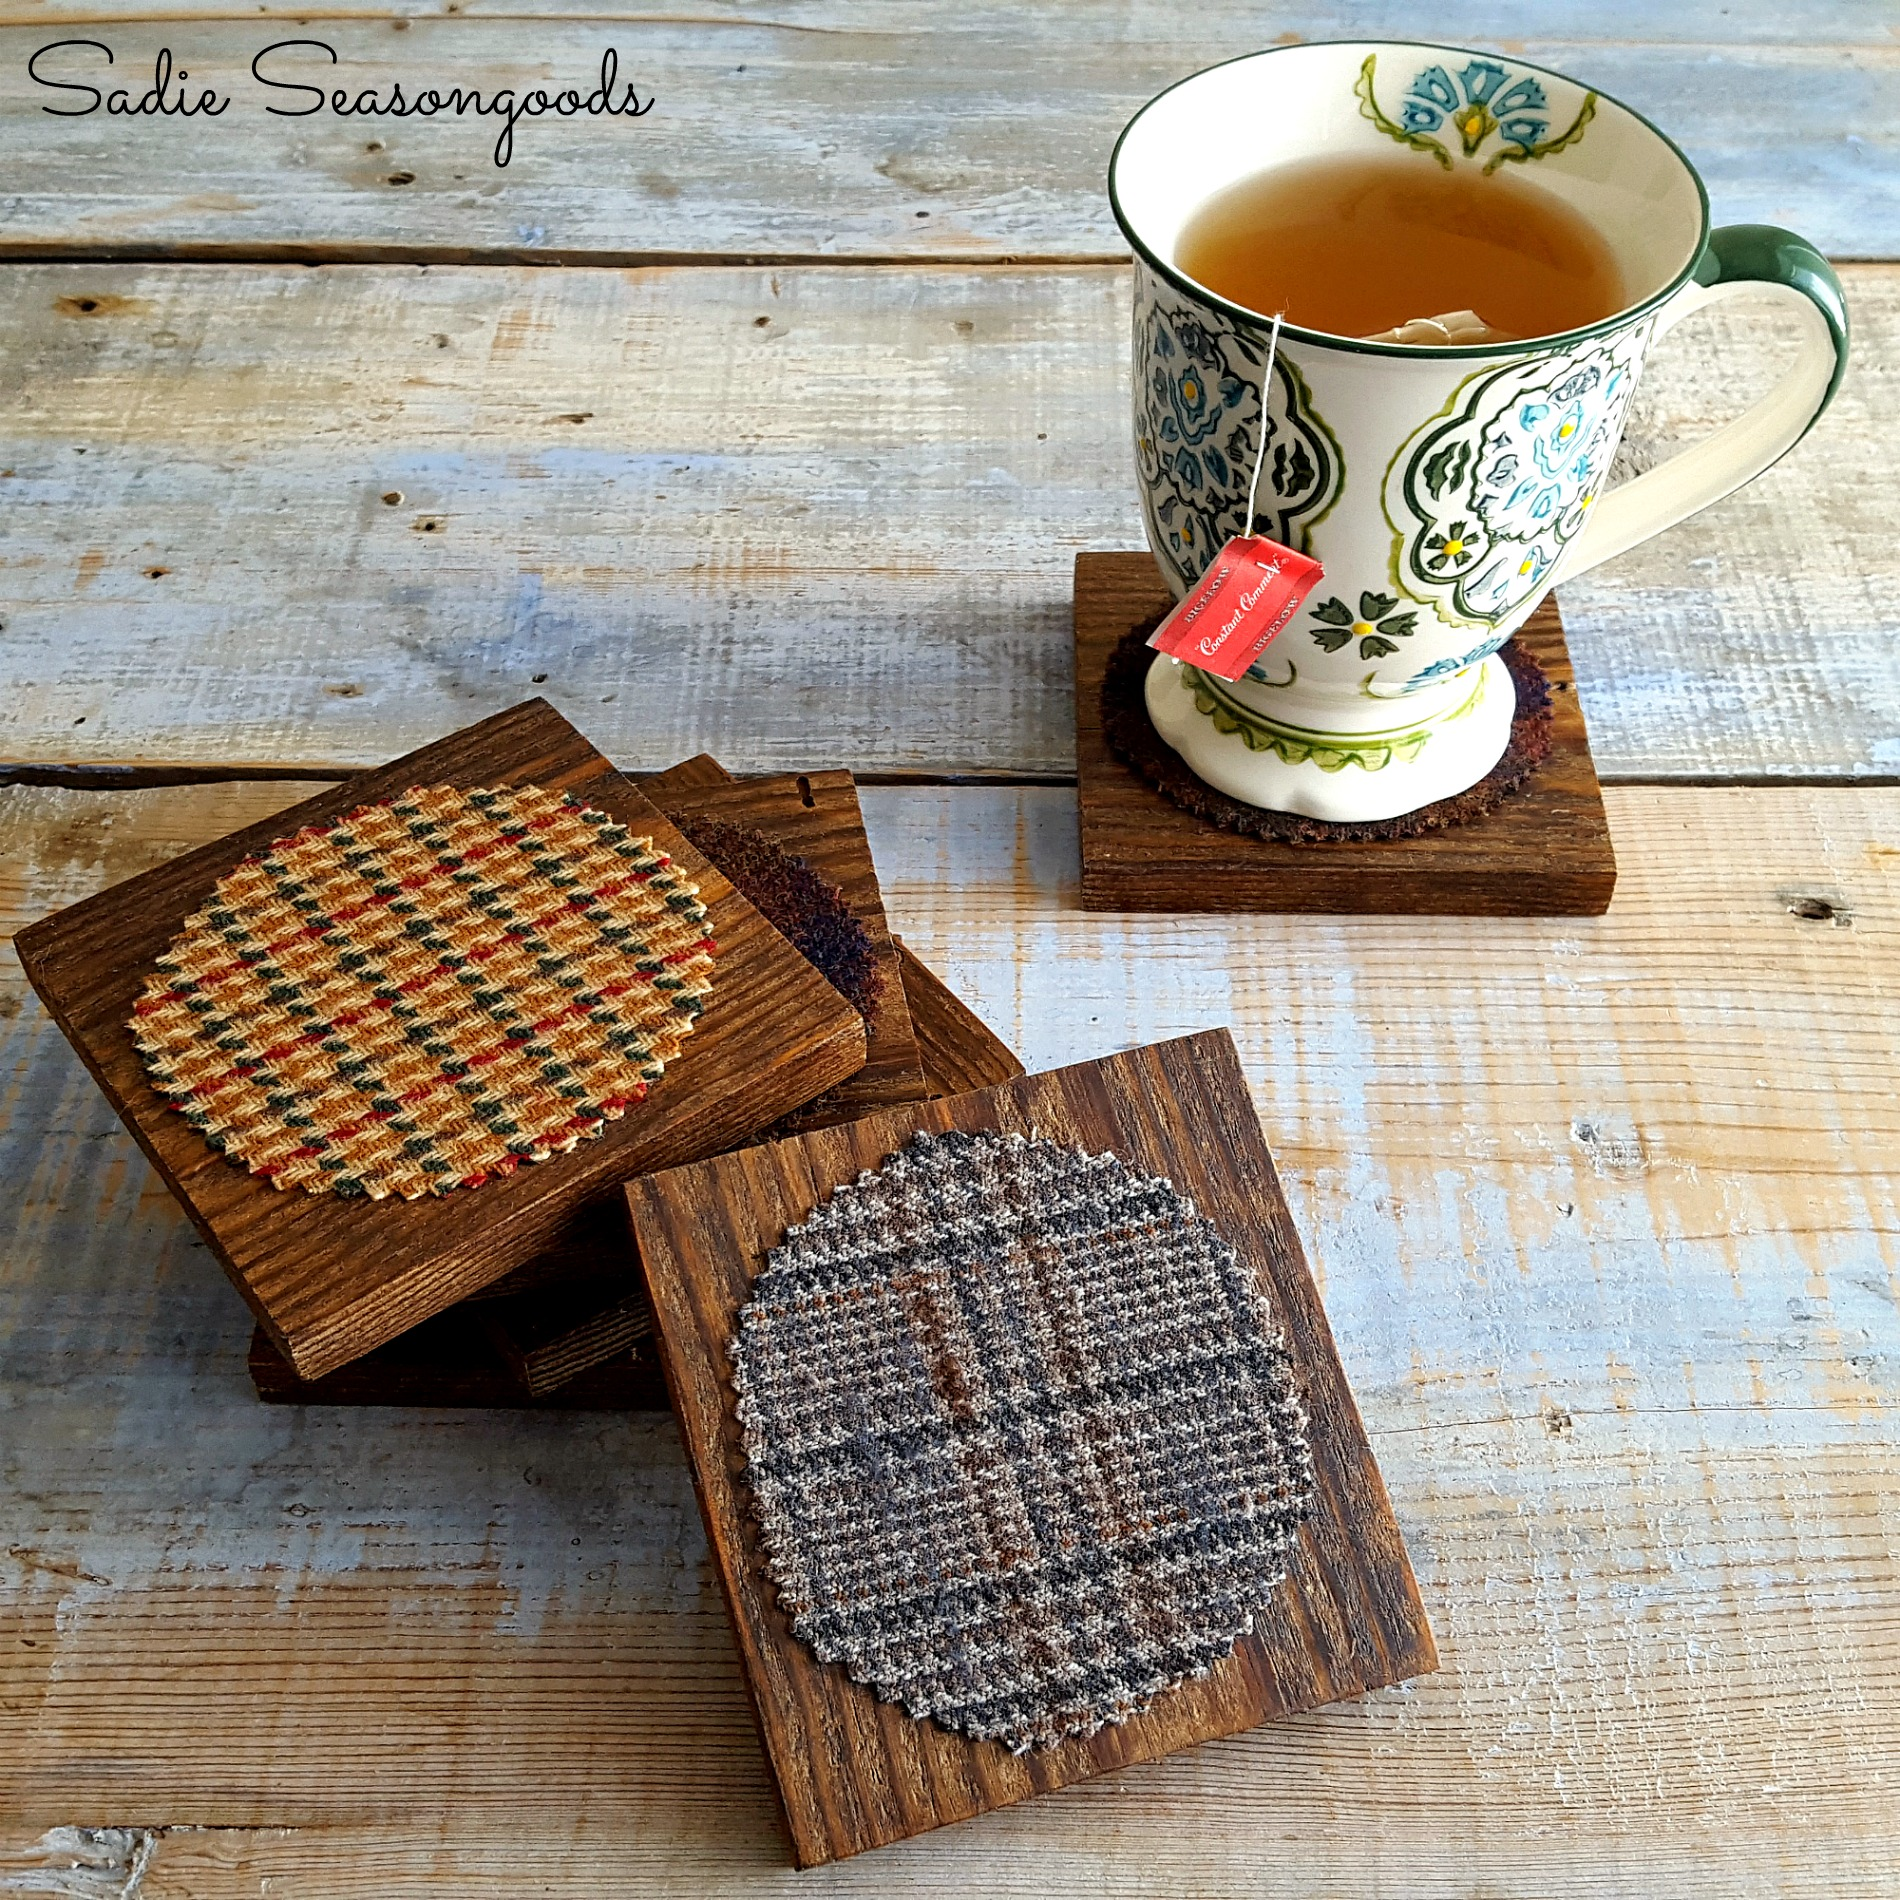 11b_Creating_salvaged_wood_and_tweed_coasters_for_autumn_by_Sadie_Seasongoods